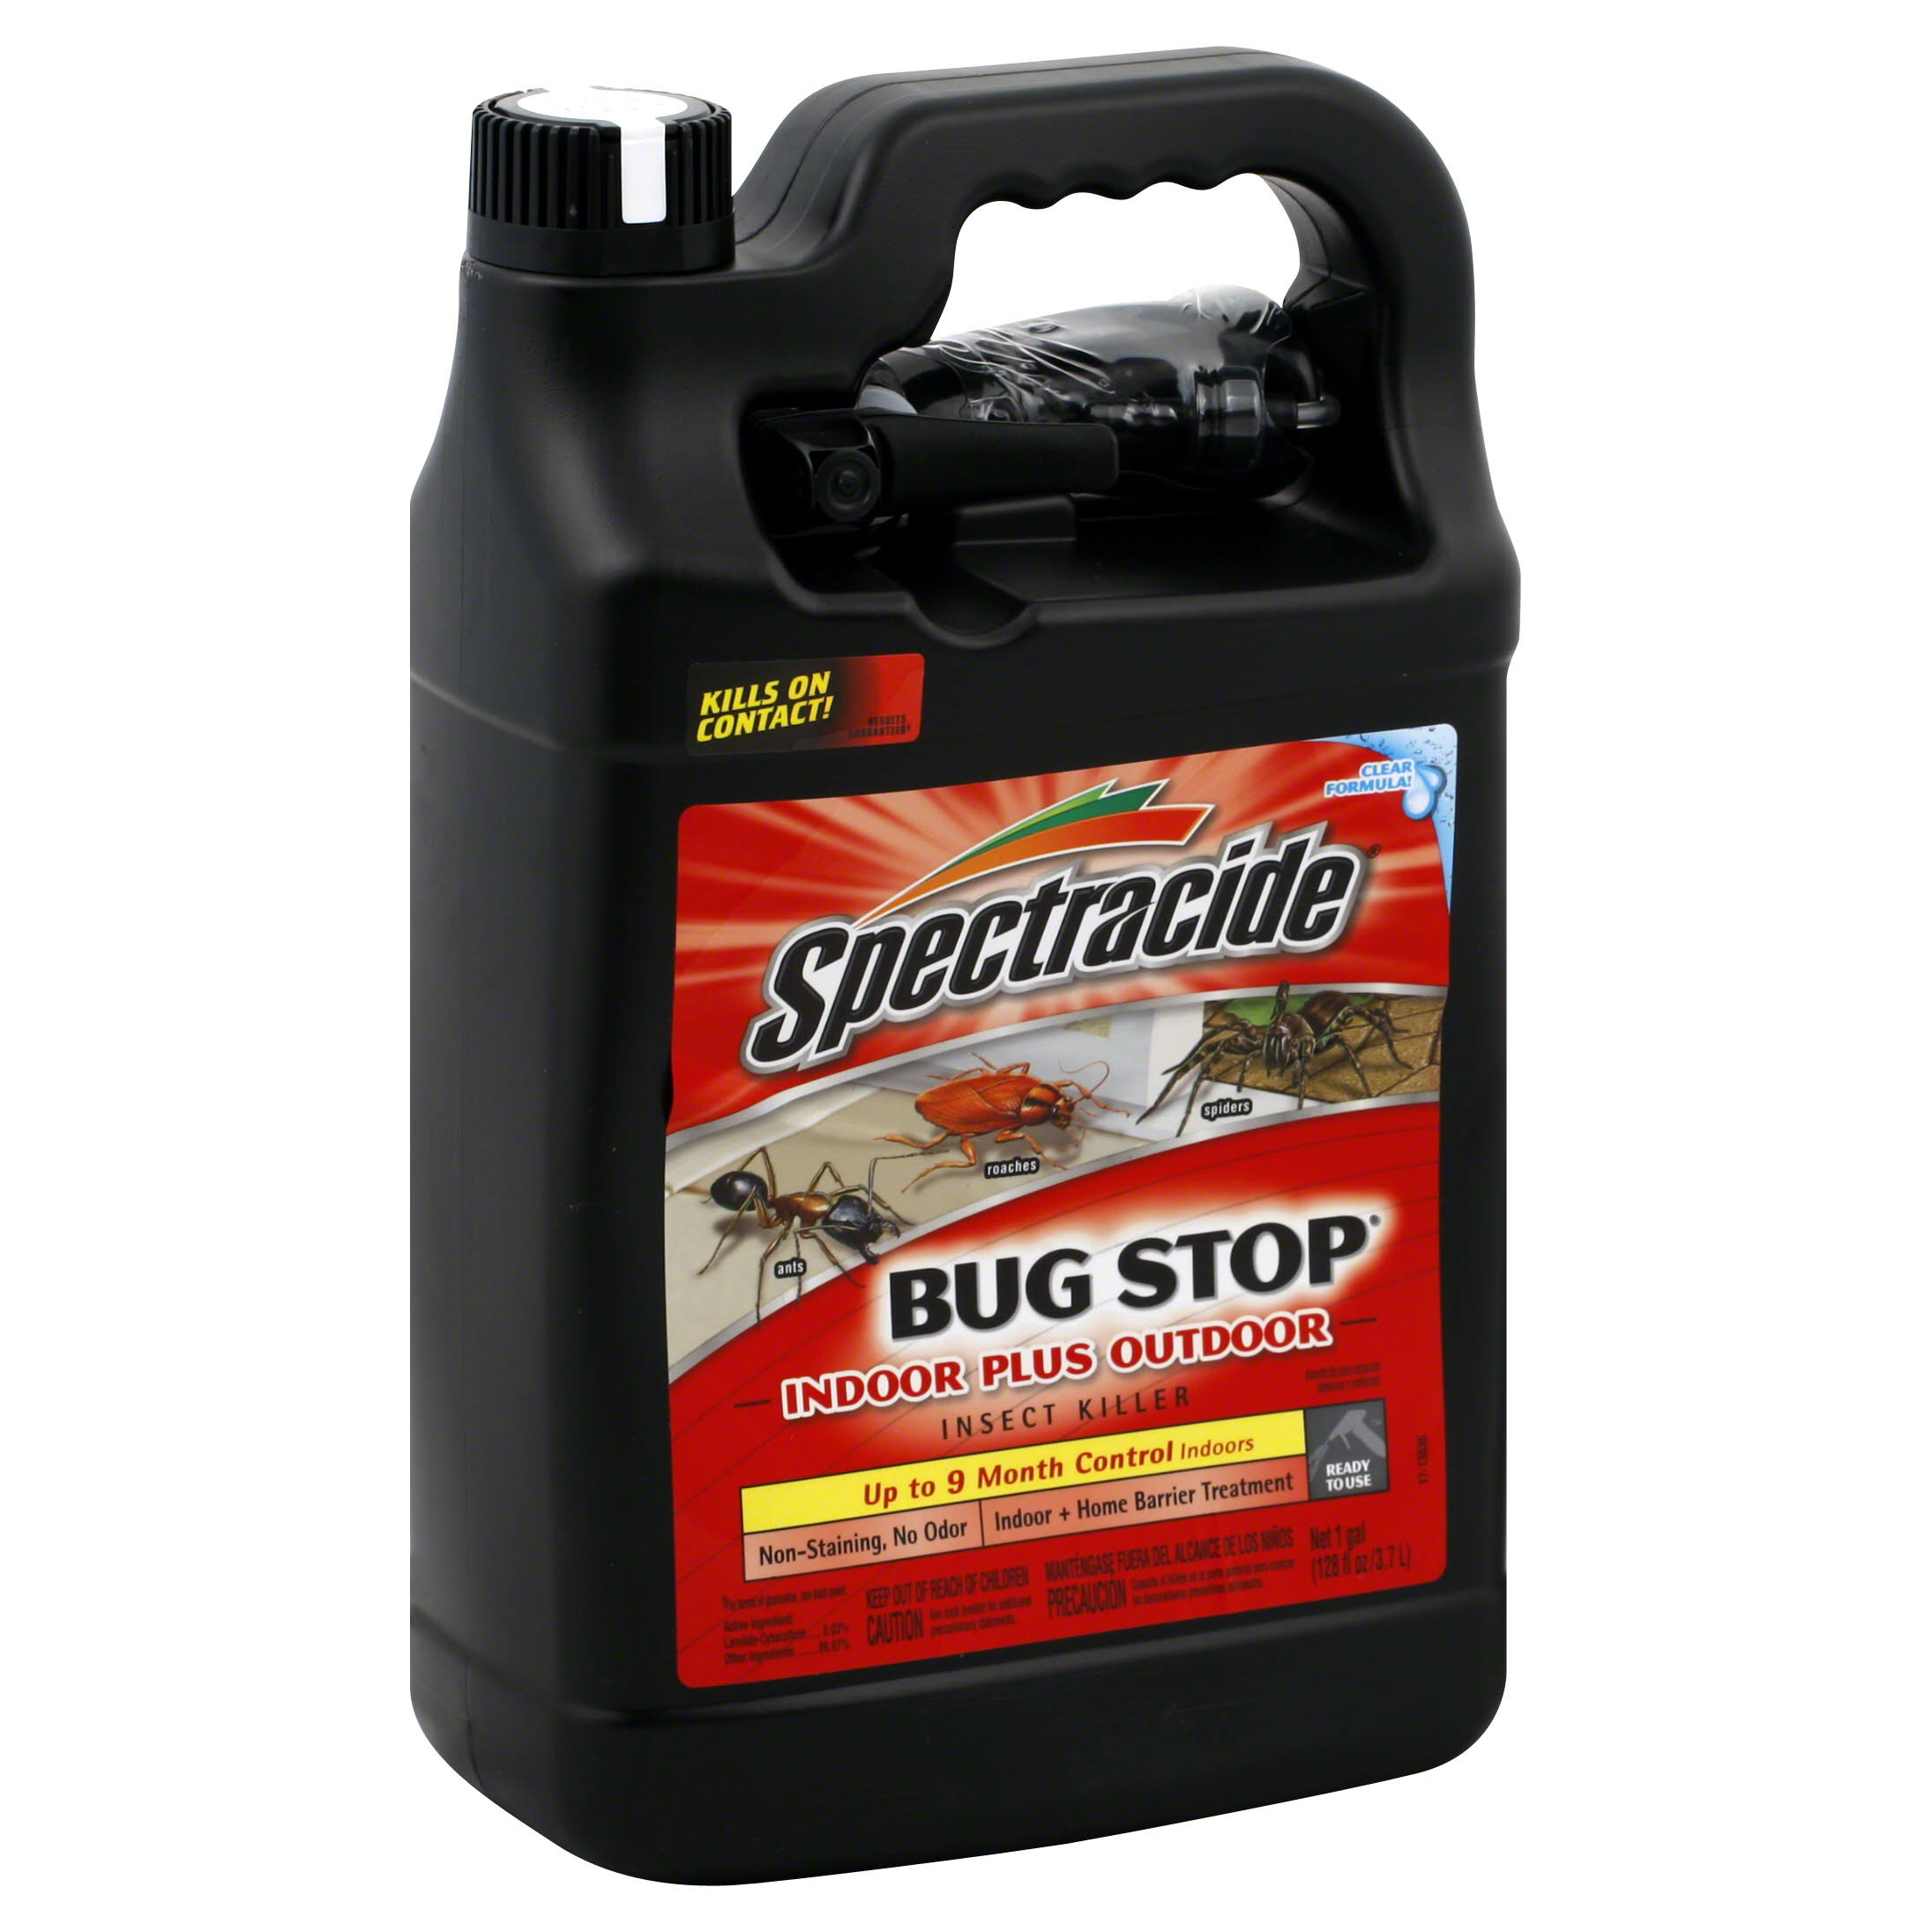 Spectracide Bug Stop Insect Killer Indoor Plus Outdoor